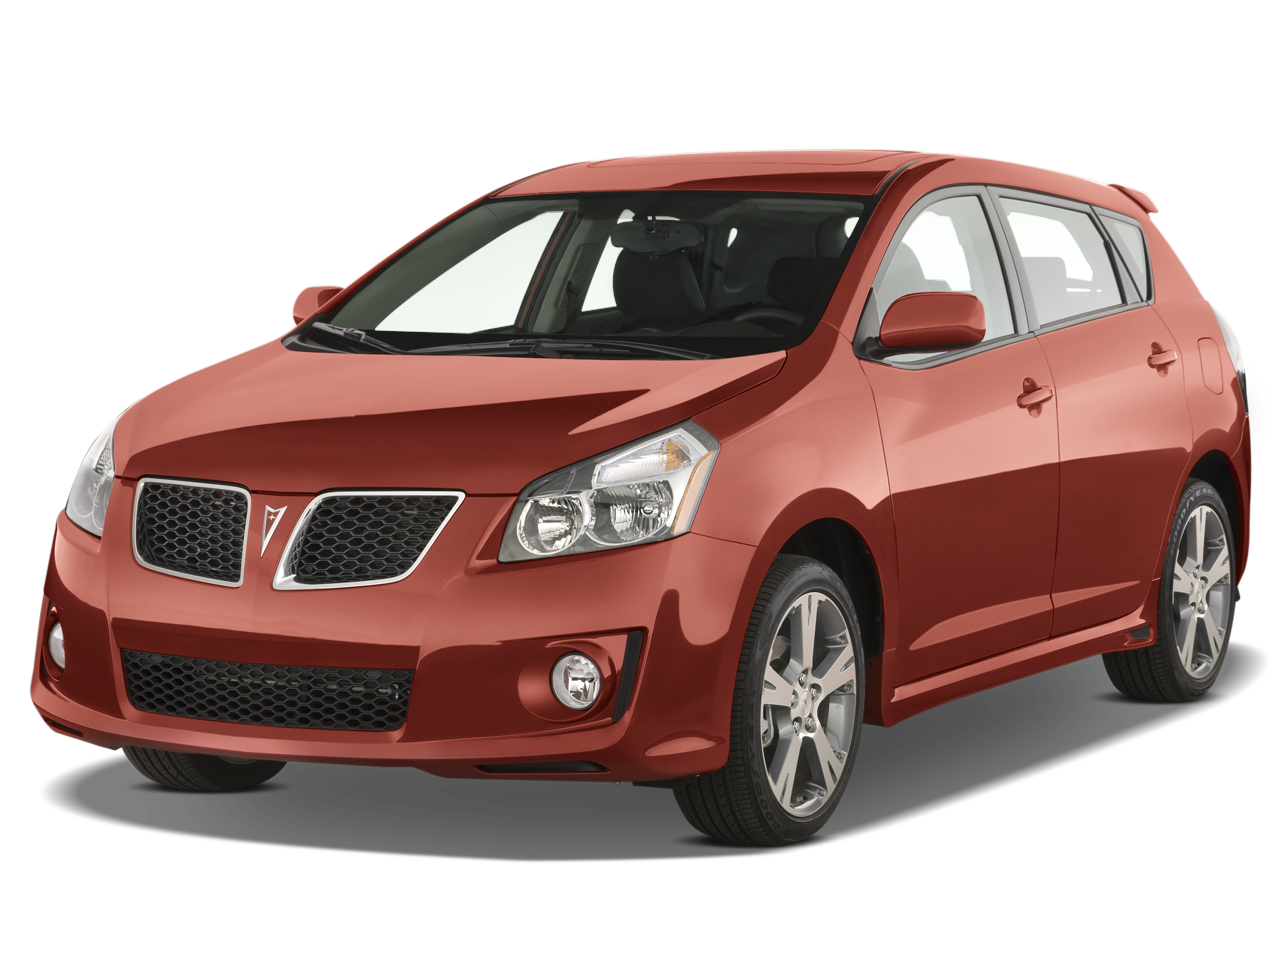 2009 pontiac vibe gt pontiac hatchback review. Black Bedroom Furniture Sets. Home Design Ideas